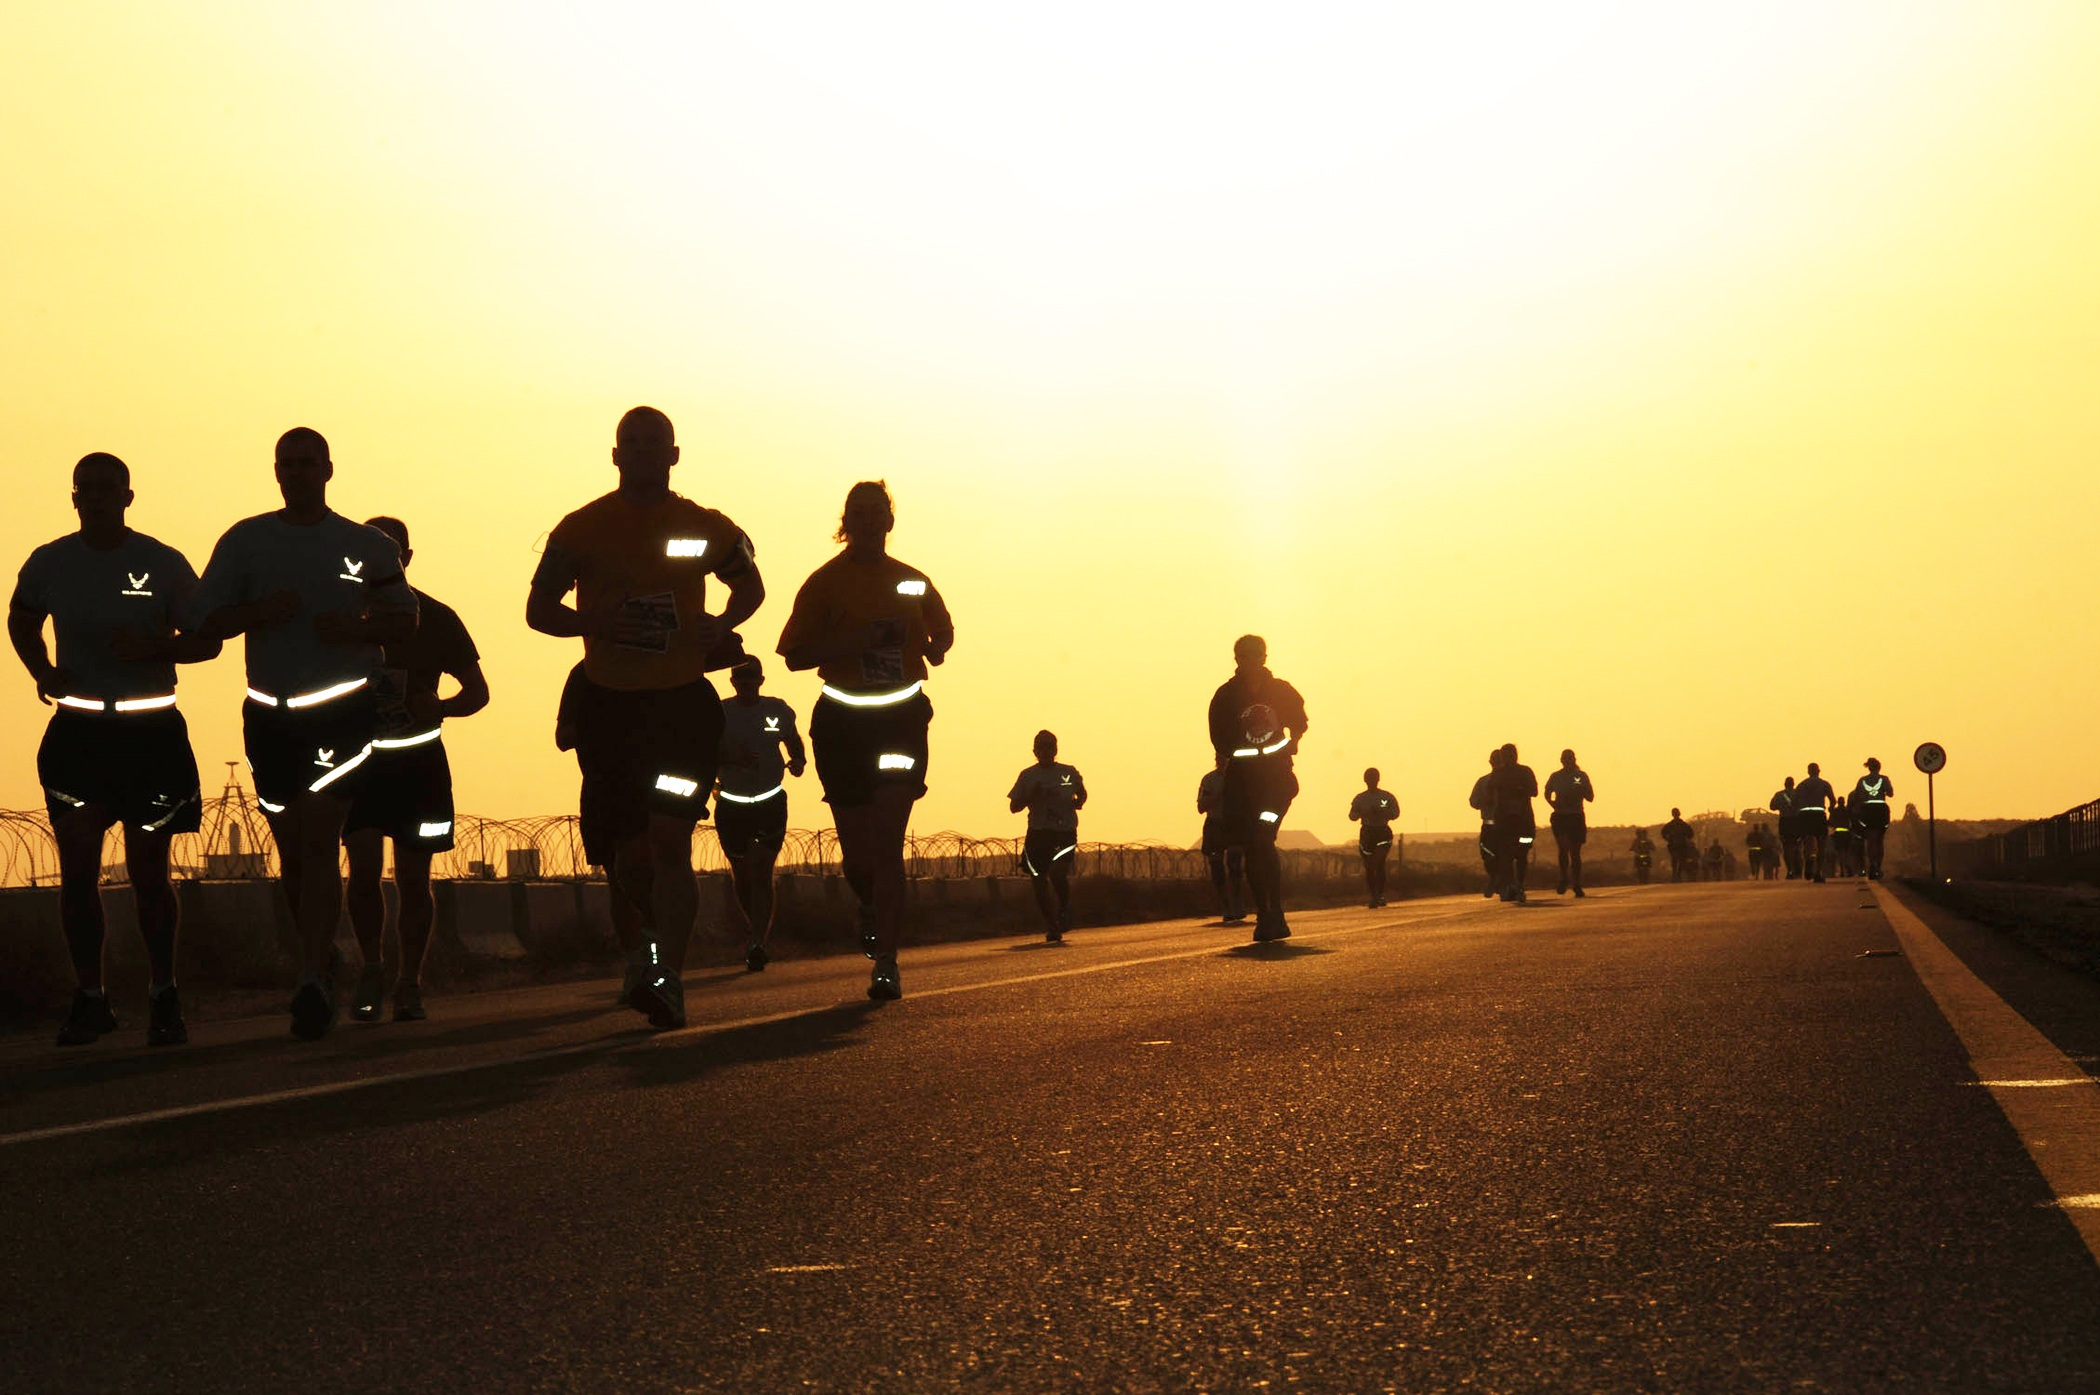 Marathon Runners, Activity, Competition, Fit, Human, HQ Photo